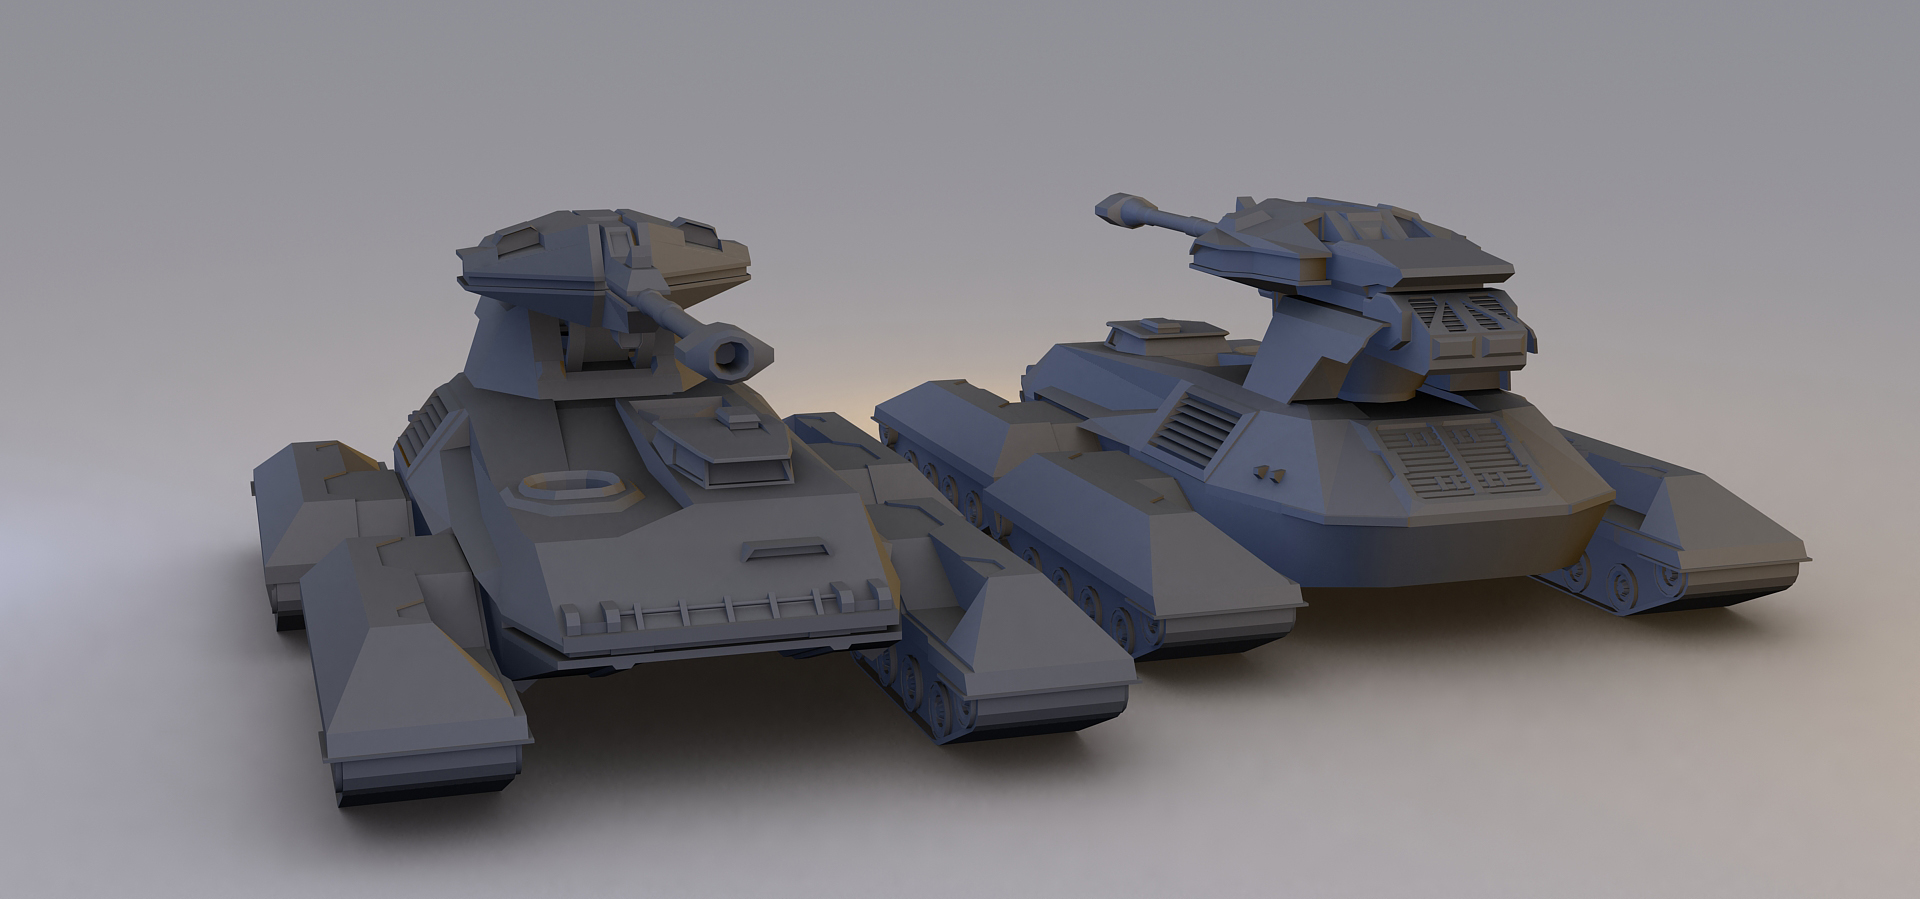 Halo Reach Scorpion Tank By Ajemsuhgao On Deviantart